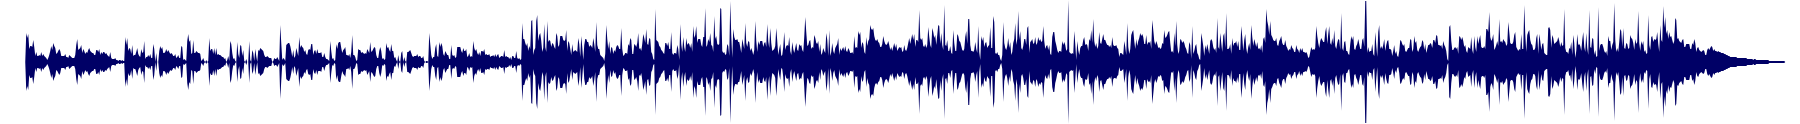 waveform of track #71178